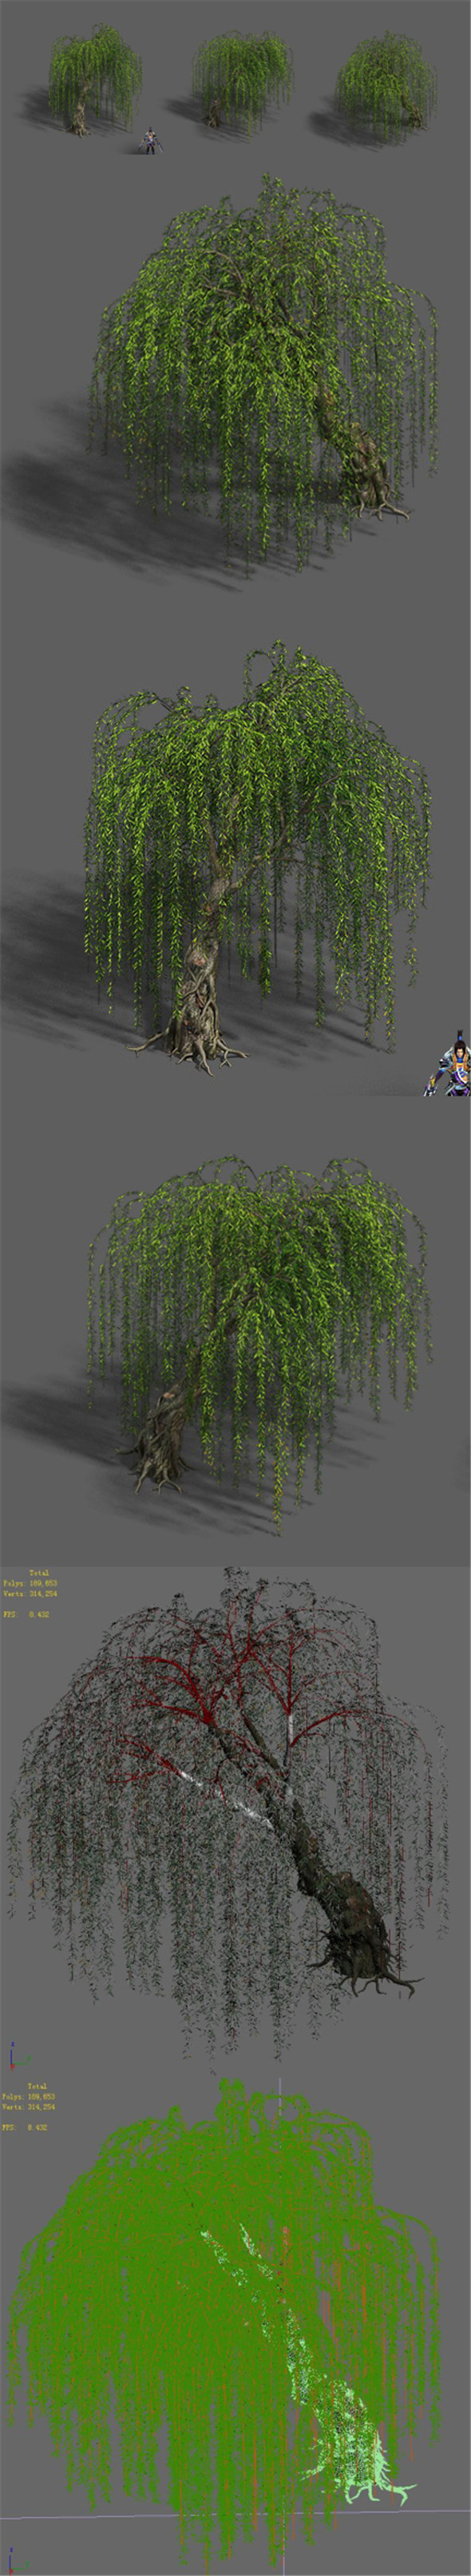 Plant - Willow 12 - 3DOcean Item for Sale